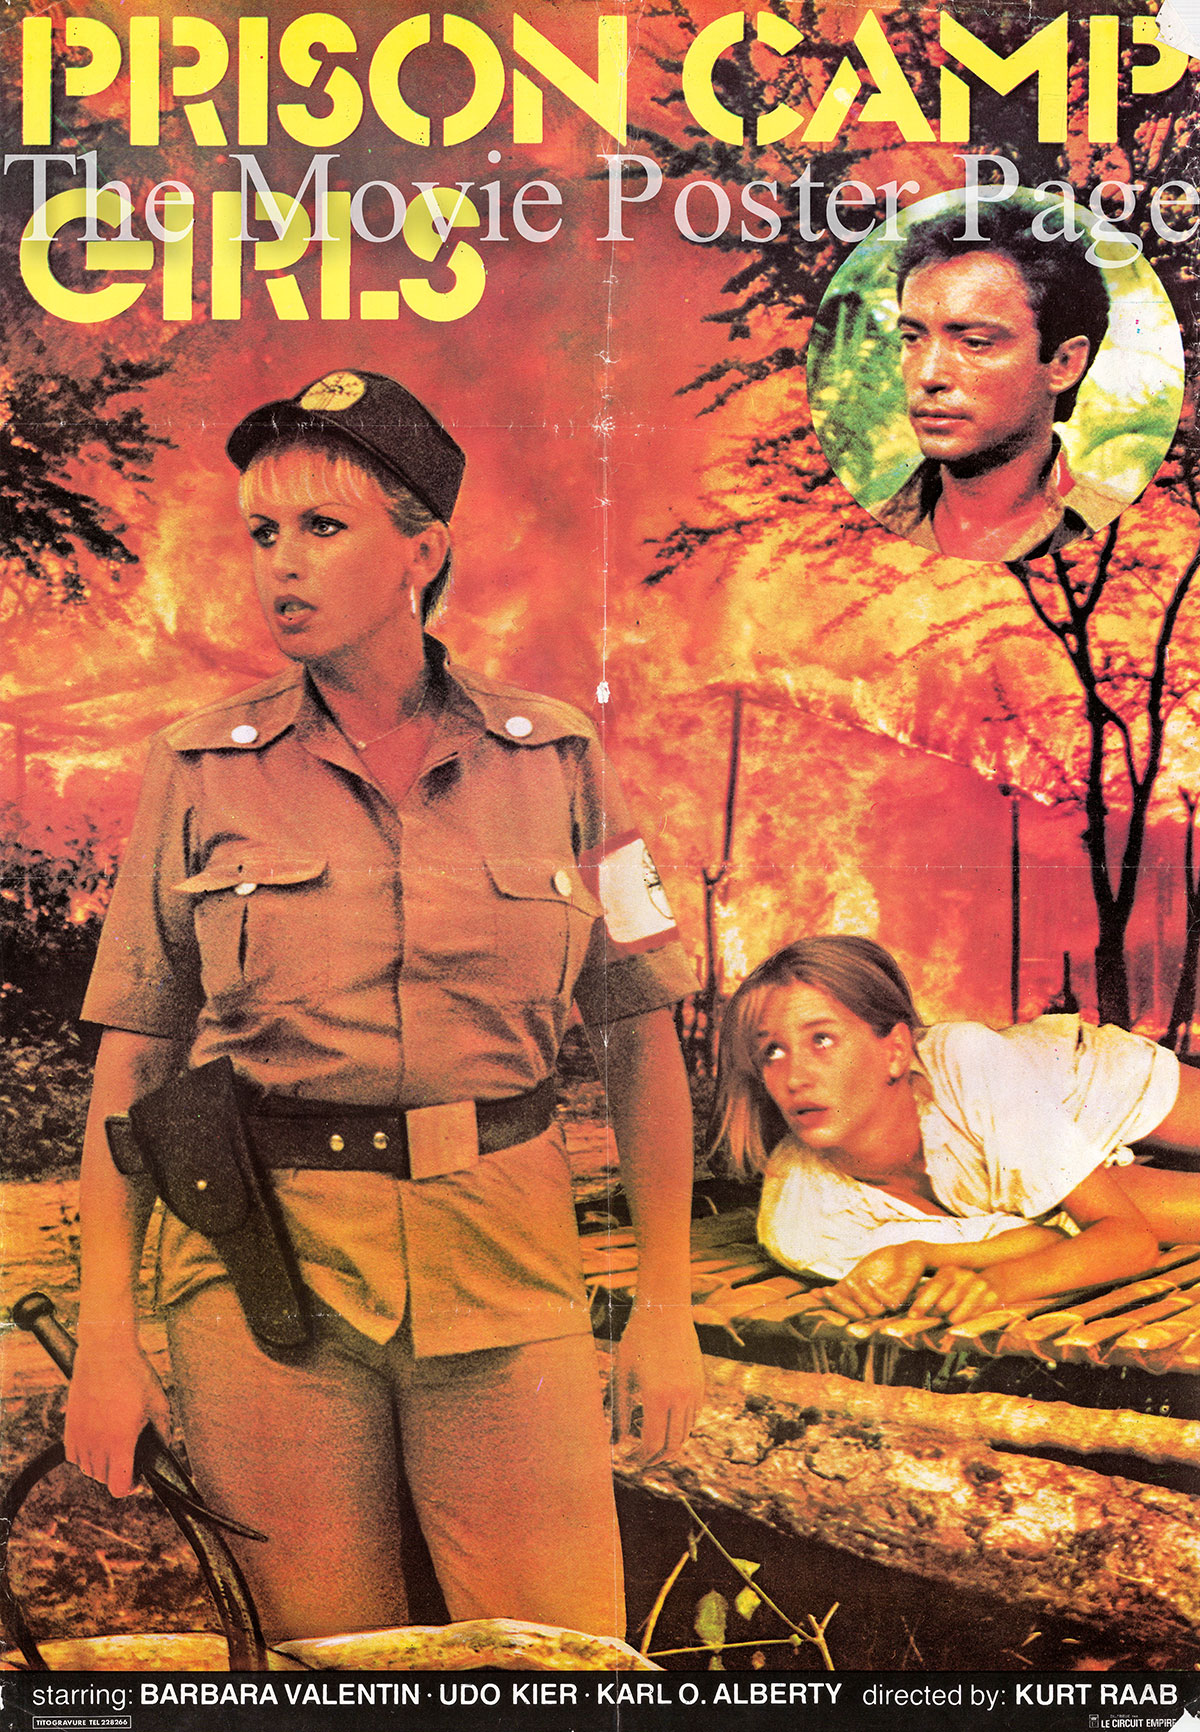 The picture shows an Italian promotional poster for the 1983 Kurt Raab film Prison Camp Girls, starring Udo Kier as Hermano.